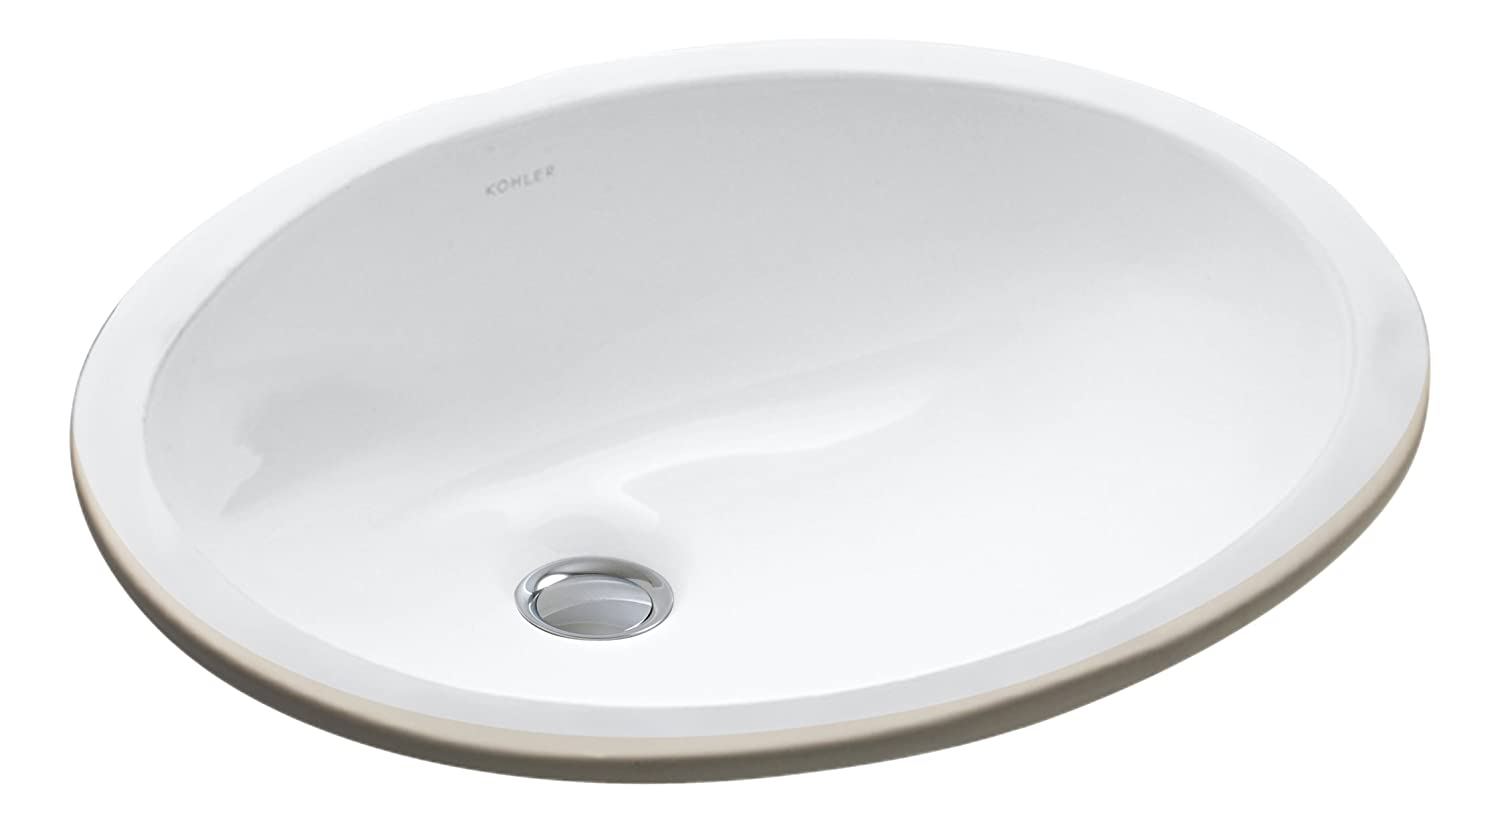 kohler k 2209 0 caxton under mount bathroom sink white rh amazon com white round undermount bathroom sink white round undermount bathroom sink